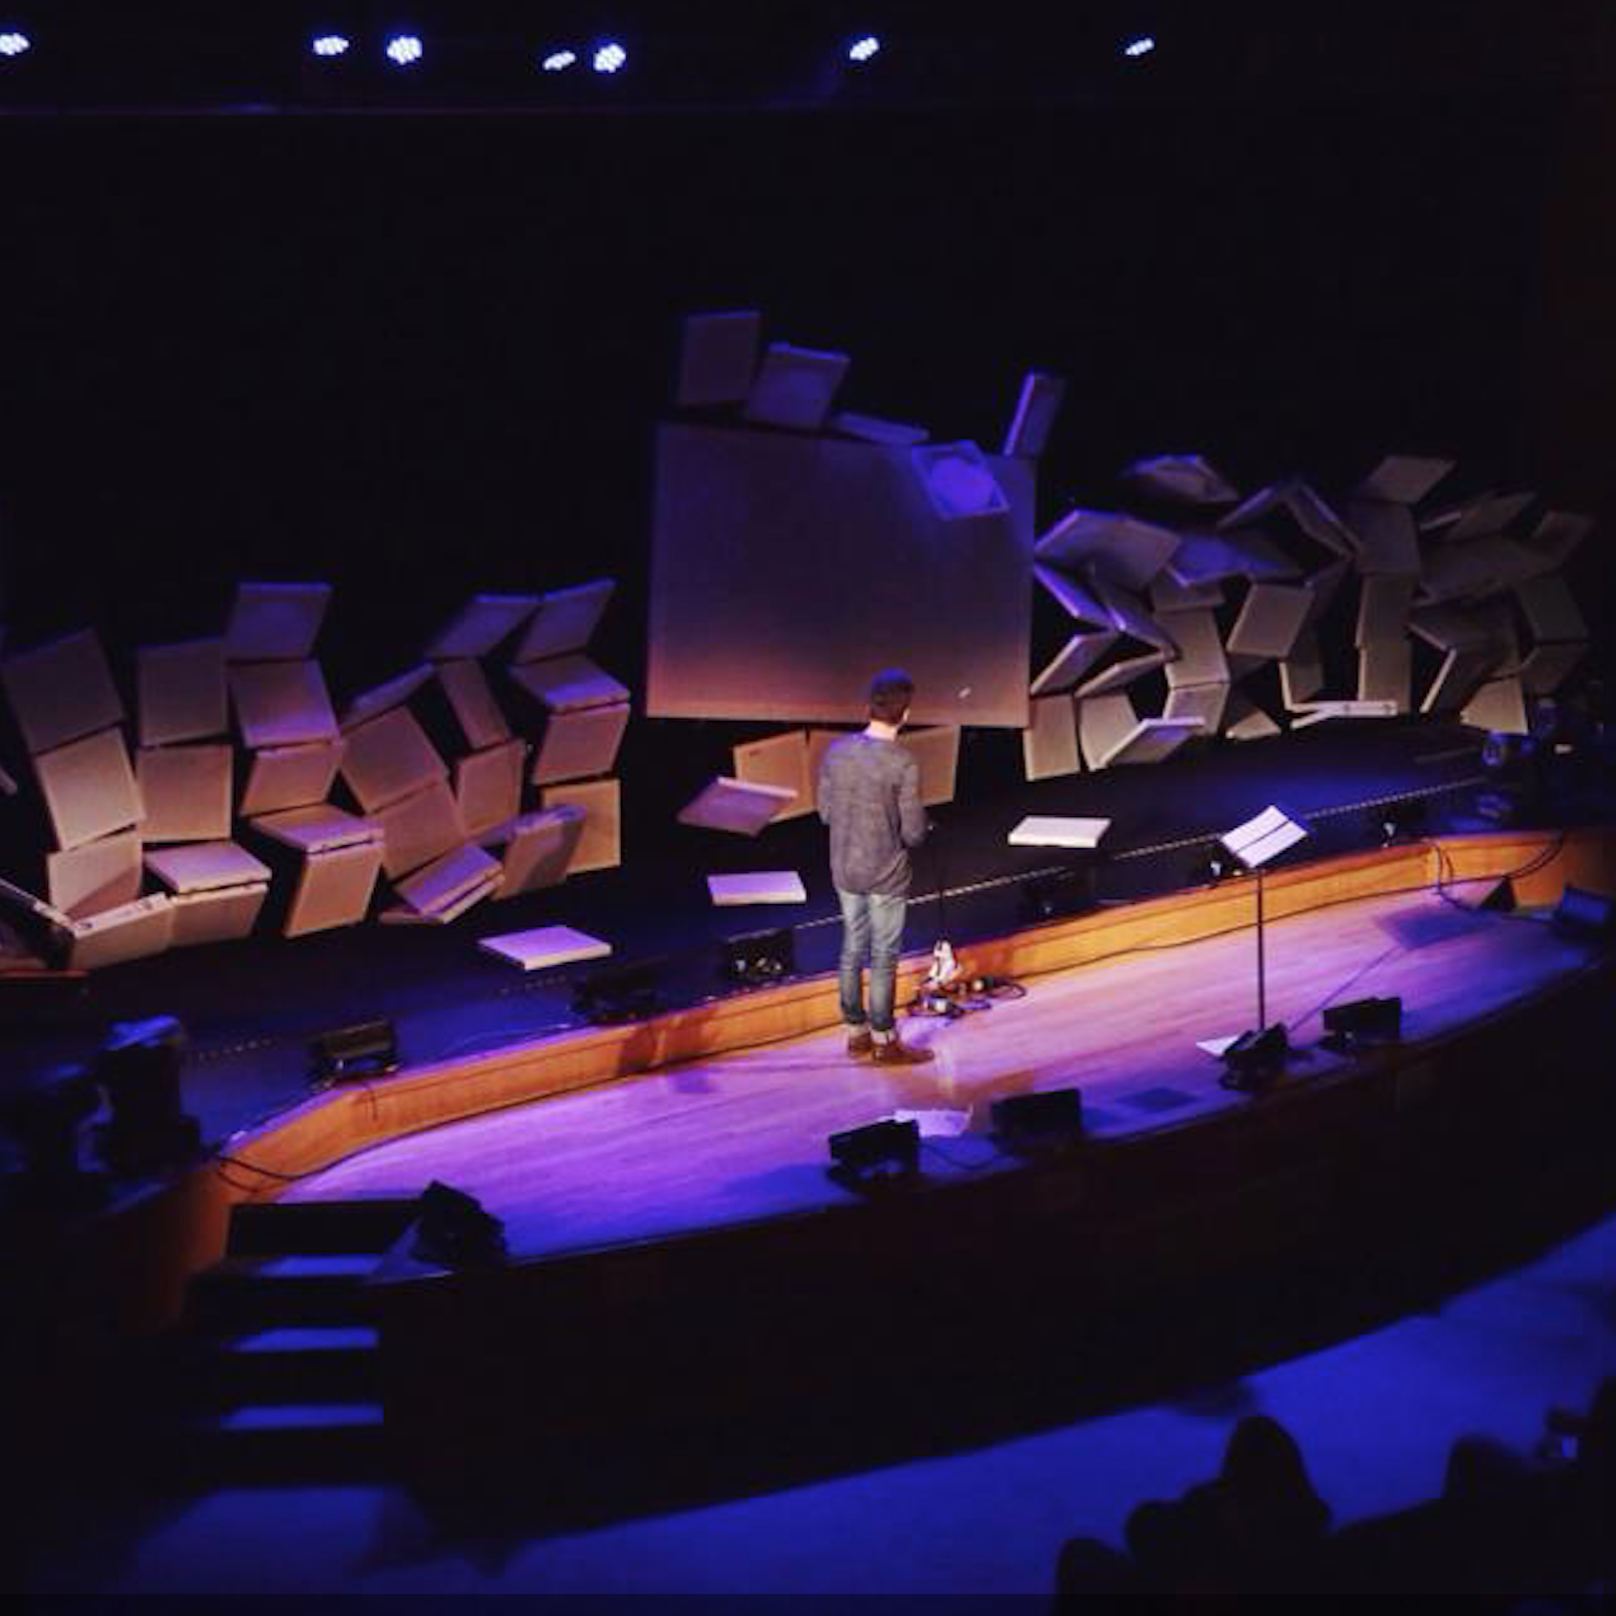 I worked with the Salt Nashville team on this talk about what to do when everything falls apart. Their team devised a system that allowed me to trigger the collapse of their entire backdrop during the talk.